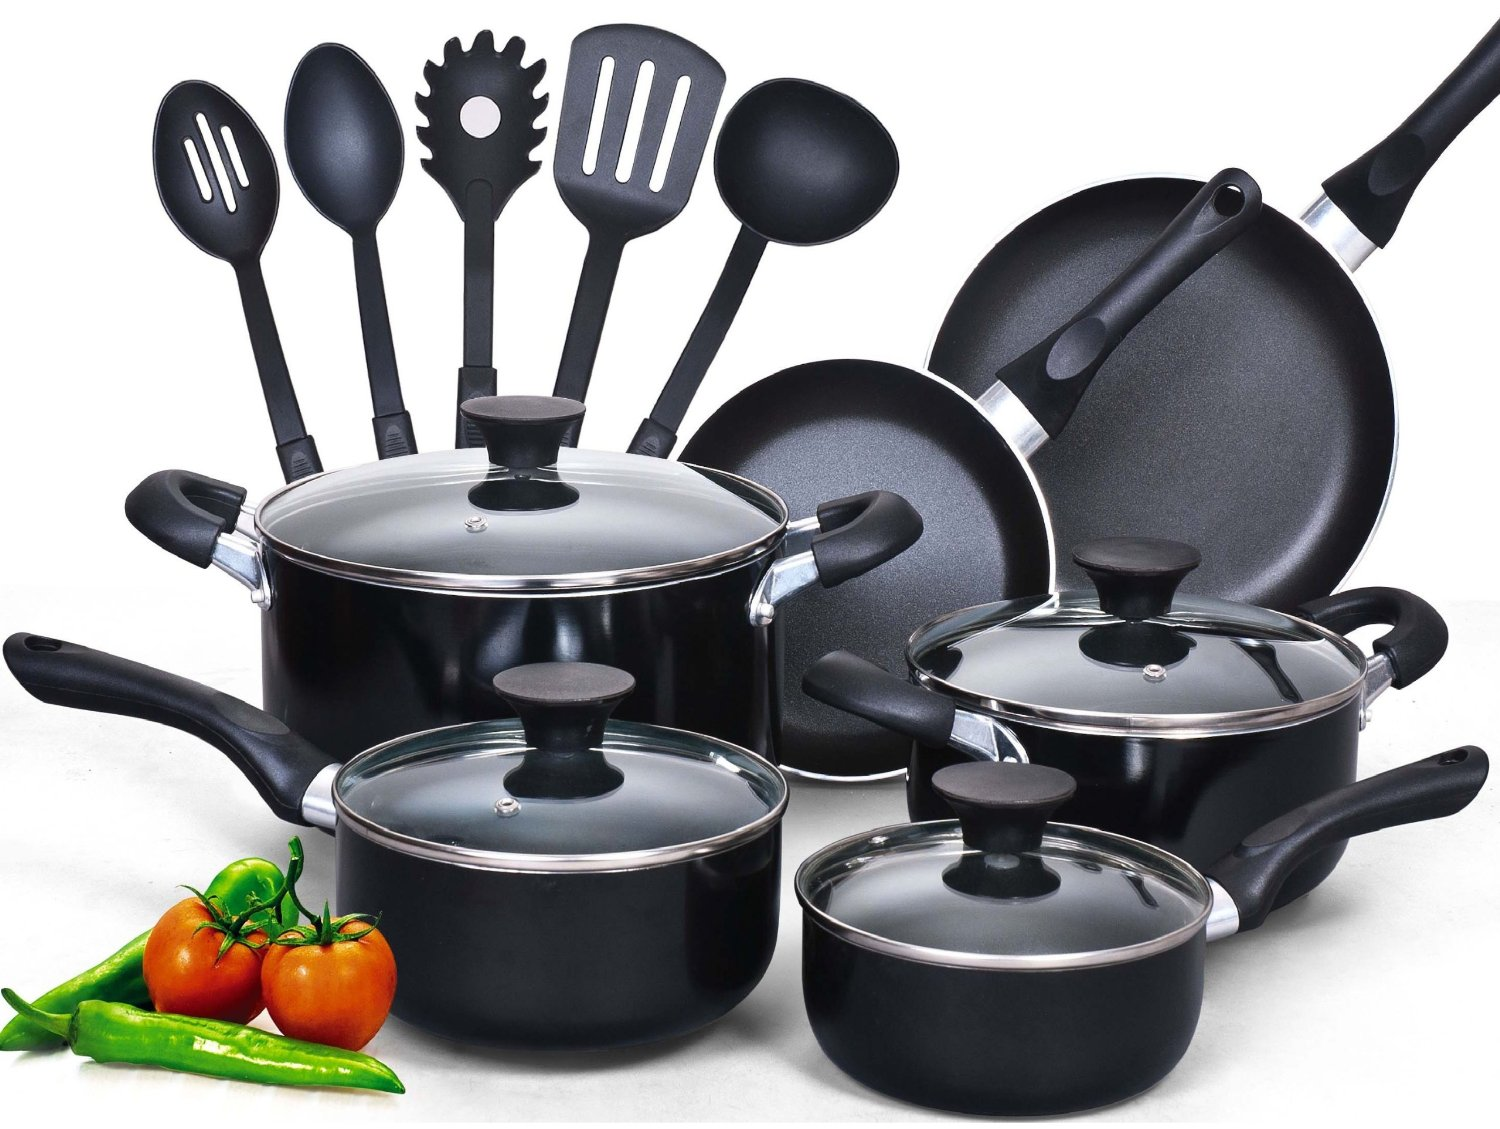 Best Pots And Pans - 5 Cookware Sets With High Rating